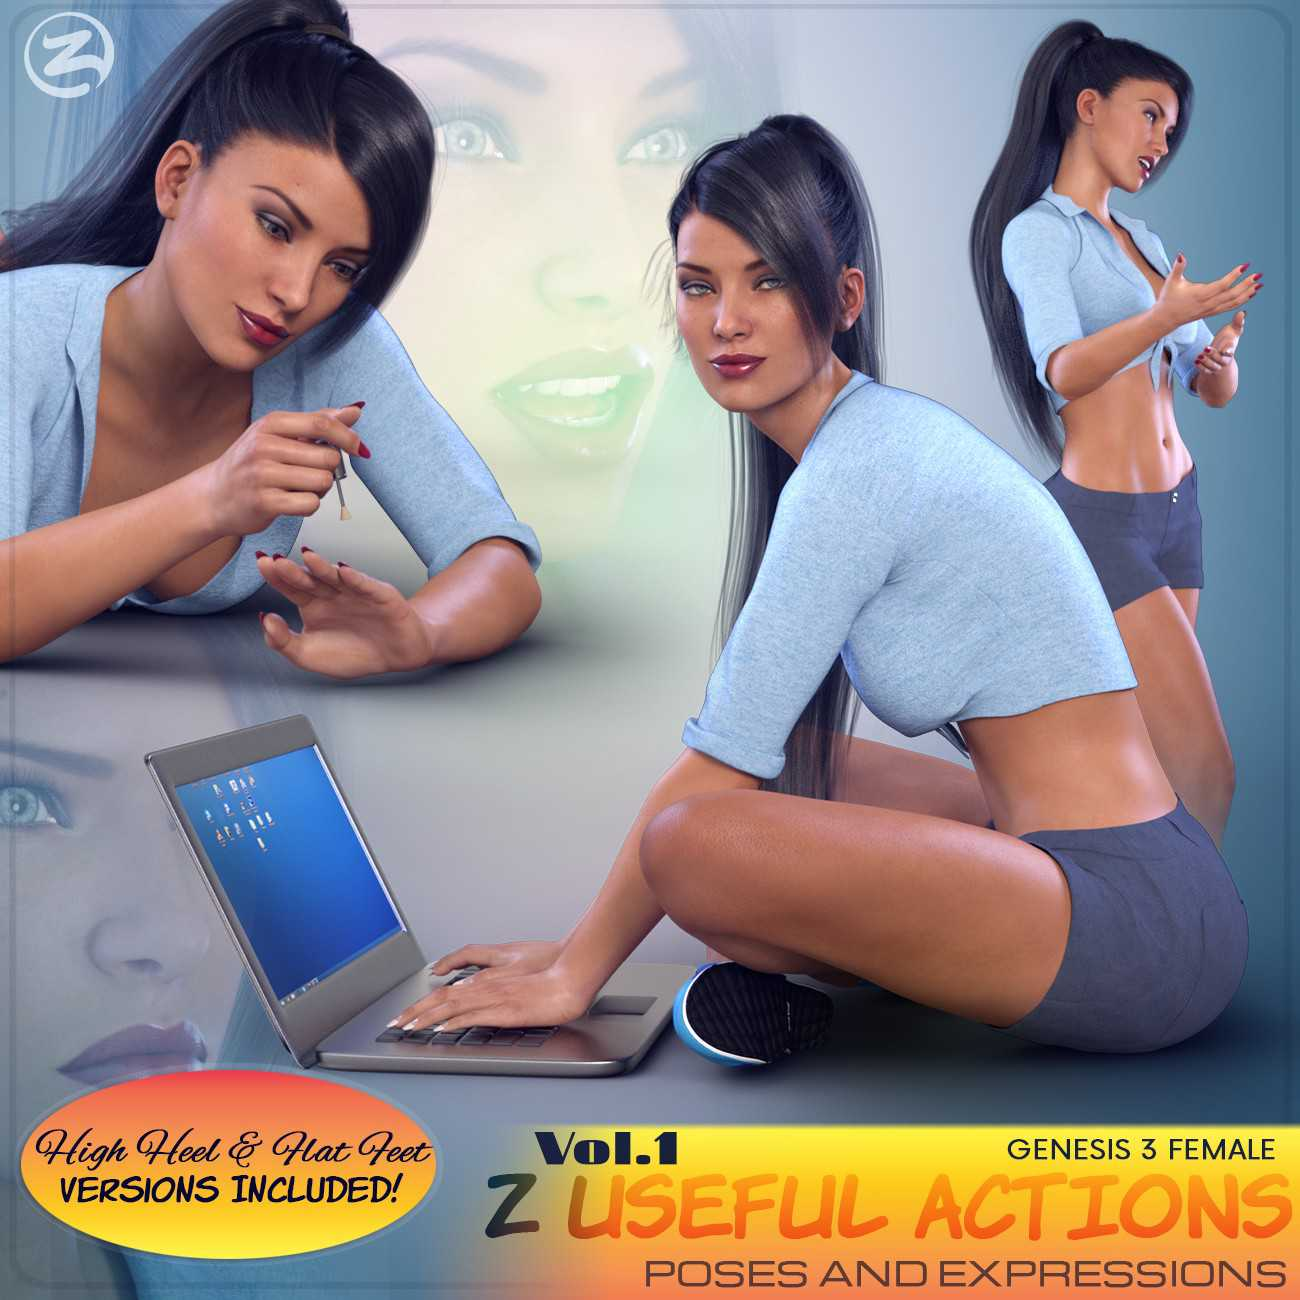 Z Useful Actions – Poses and Expressions for the Genesis 3 Females